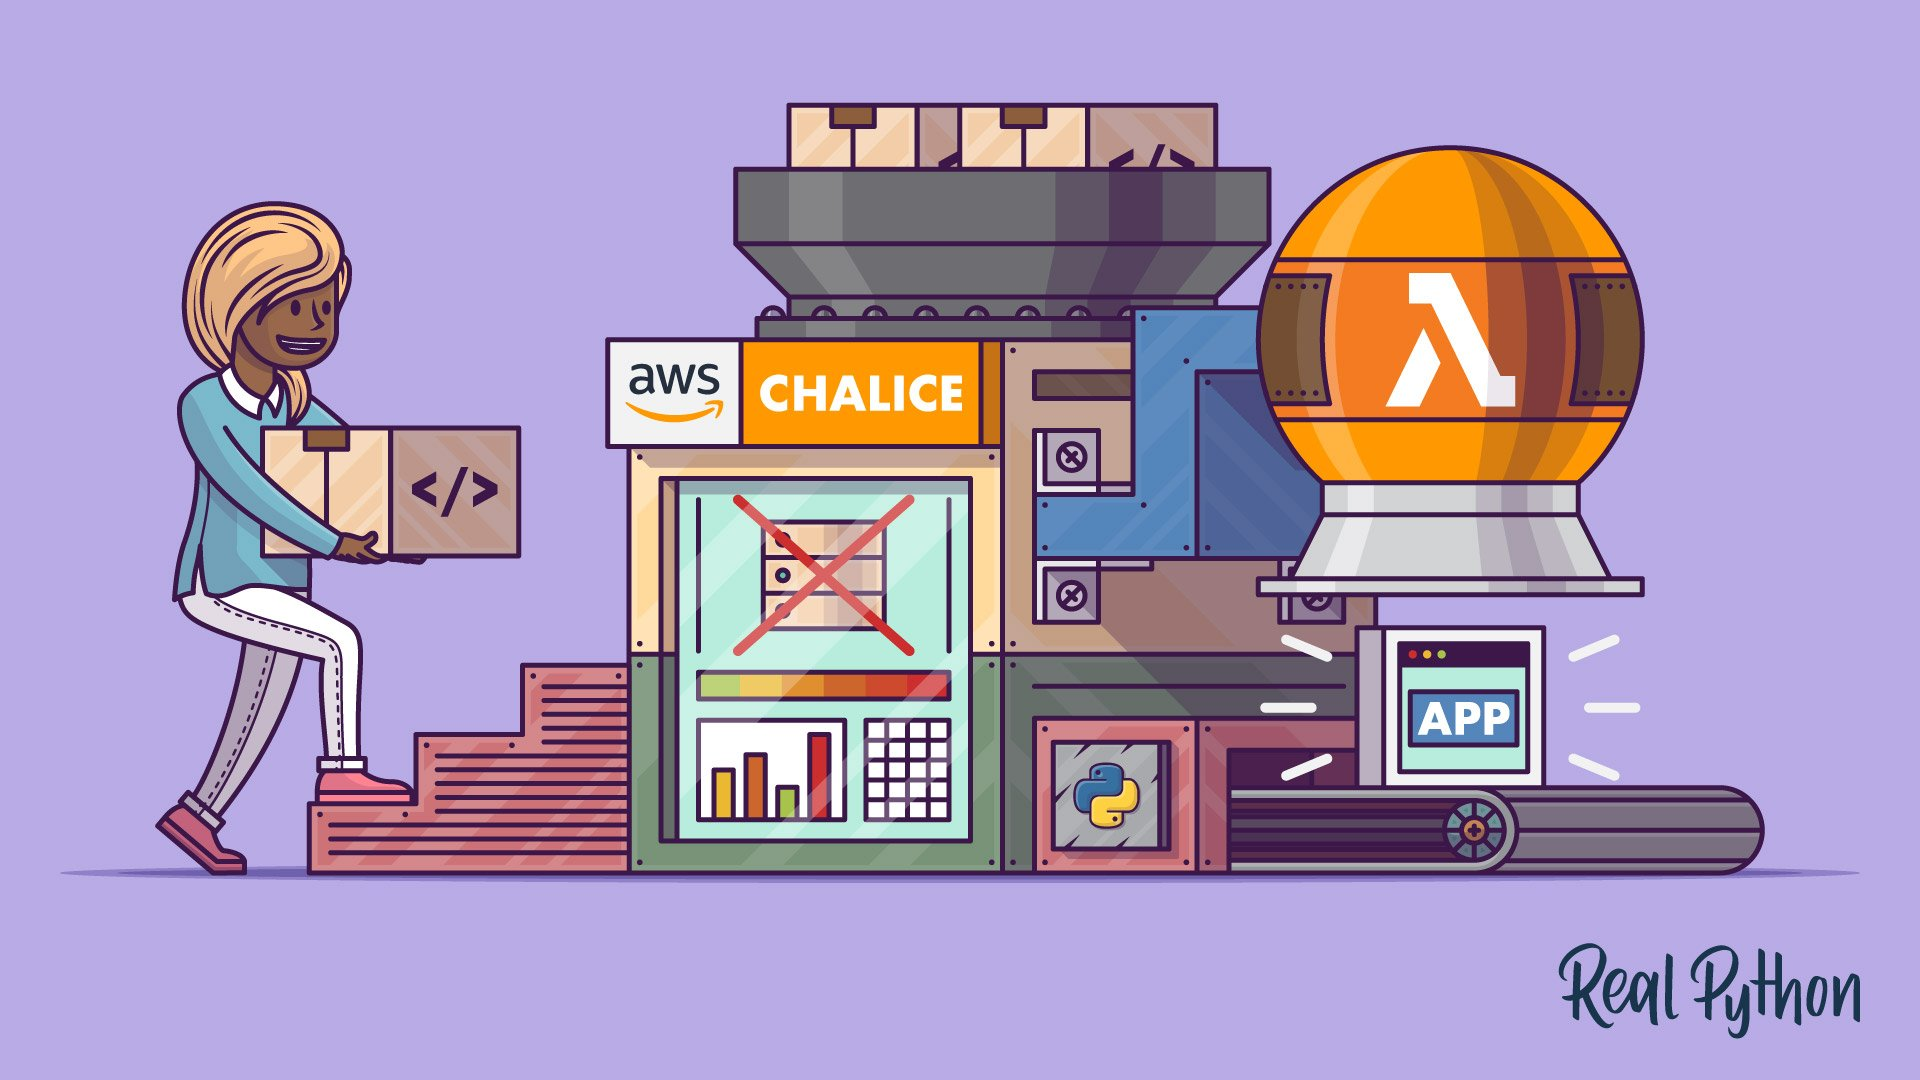 Building Serverless Apps Using AWS Chalice